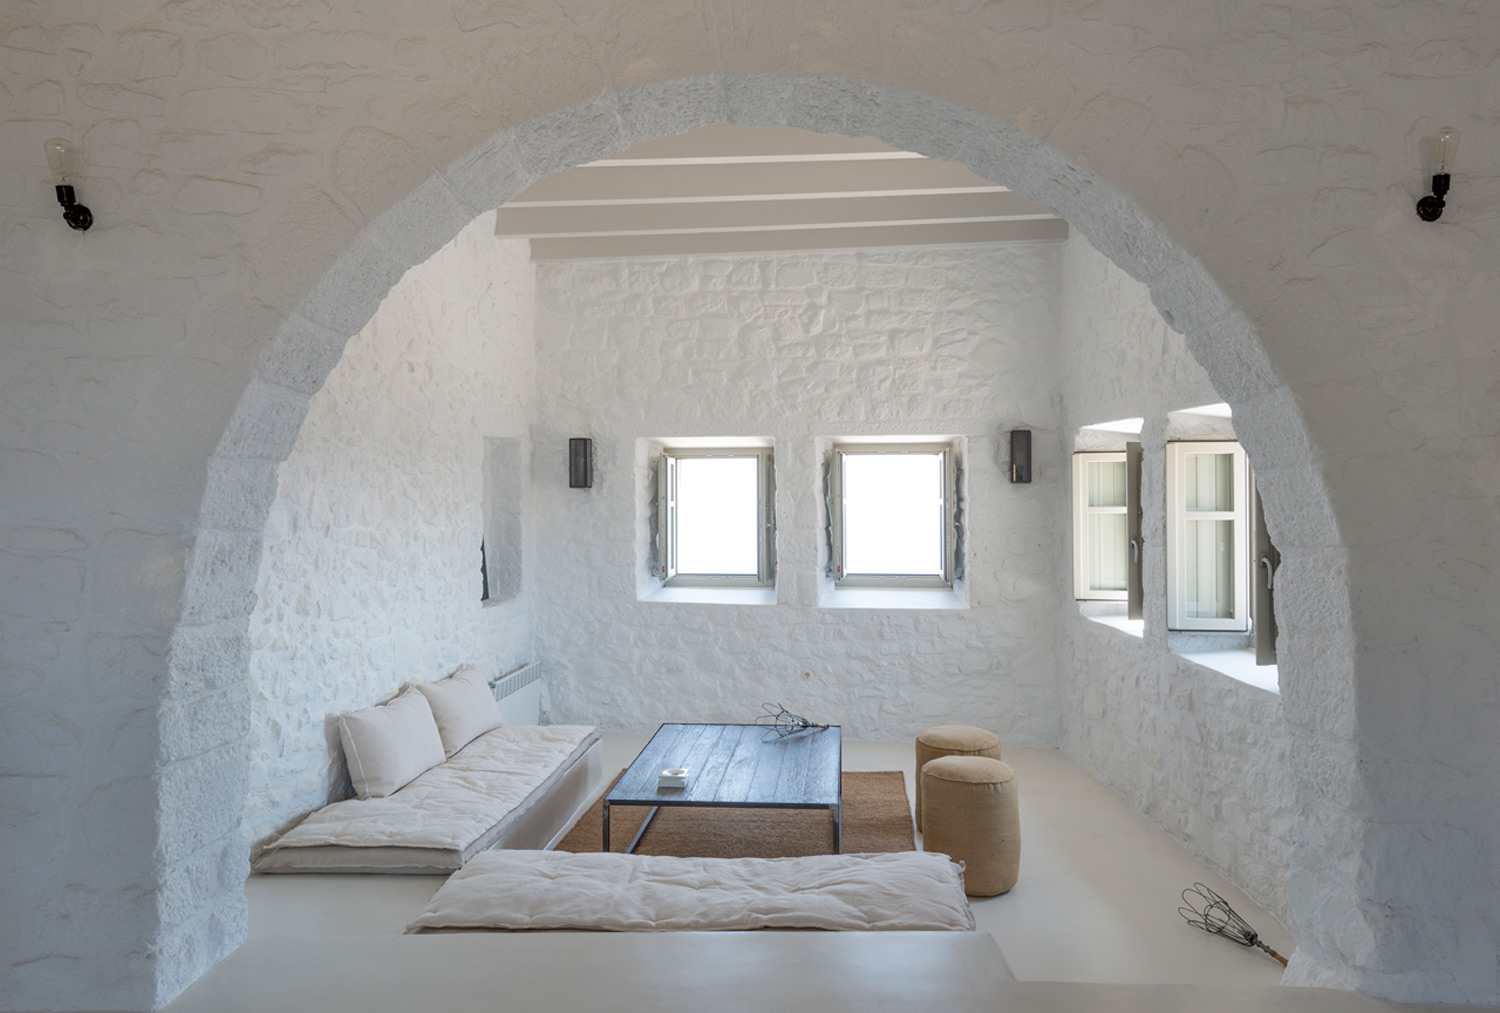 Sterna Nisyros Residence The Greek Foundation